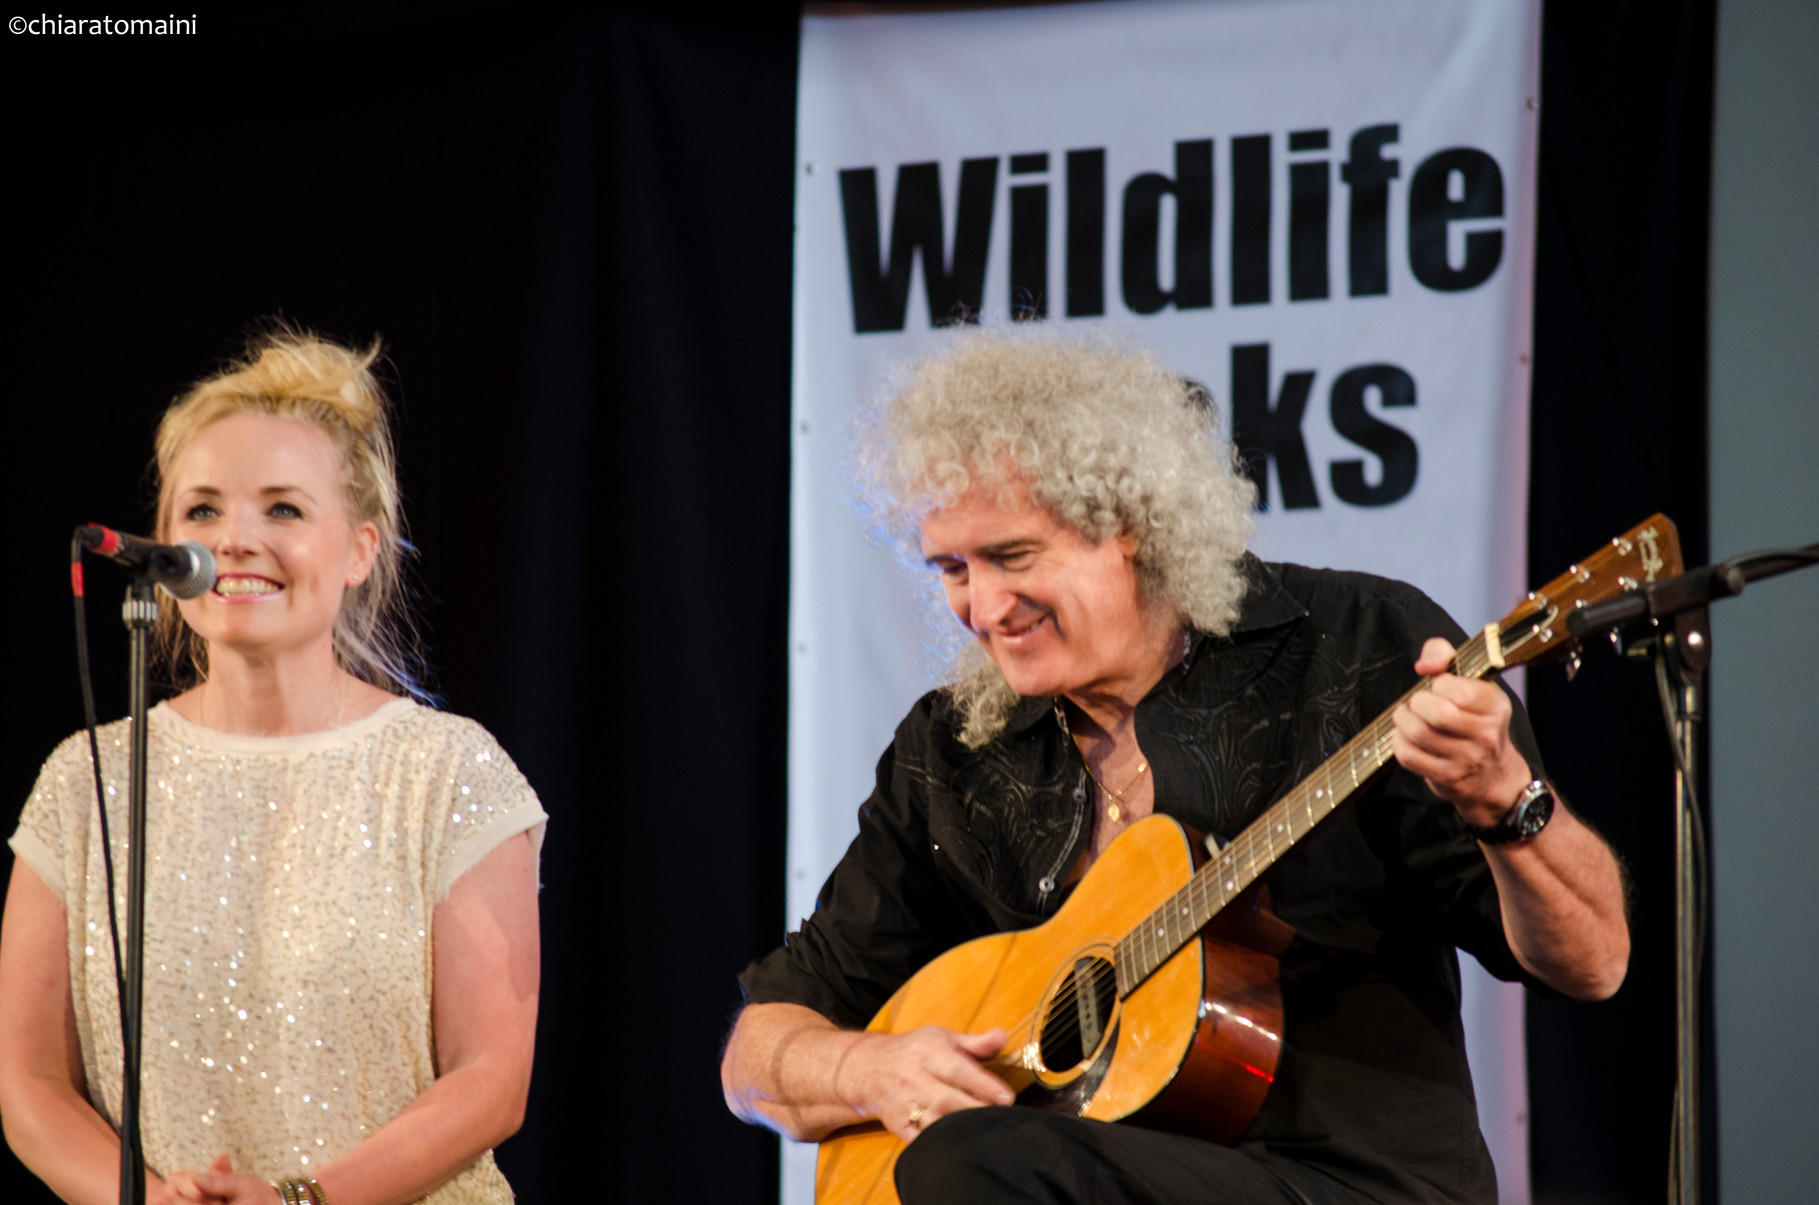 Kerry Ellis, Brian May - @ChiaraTomaini